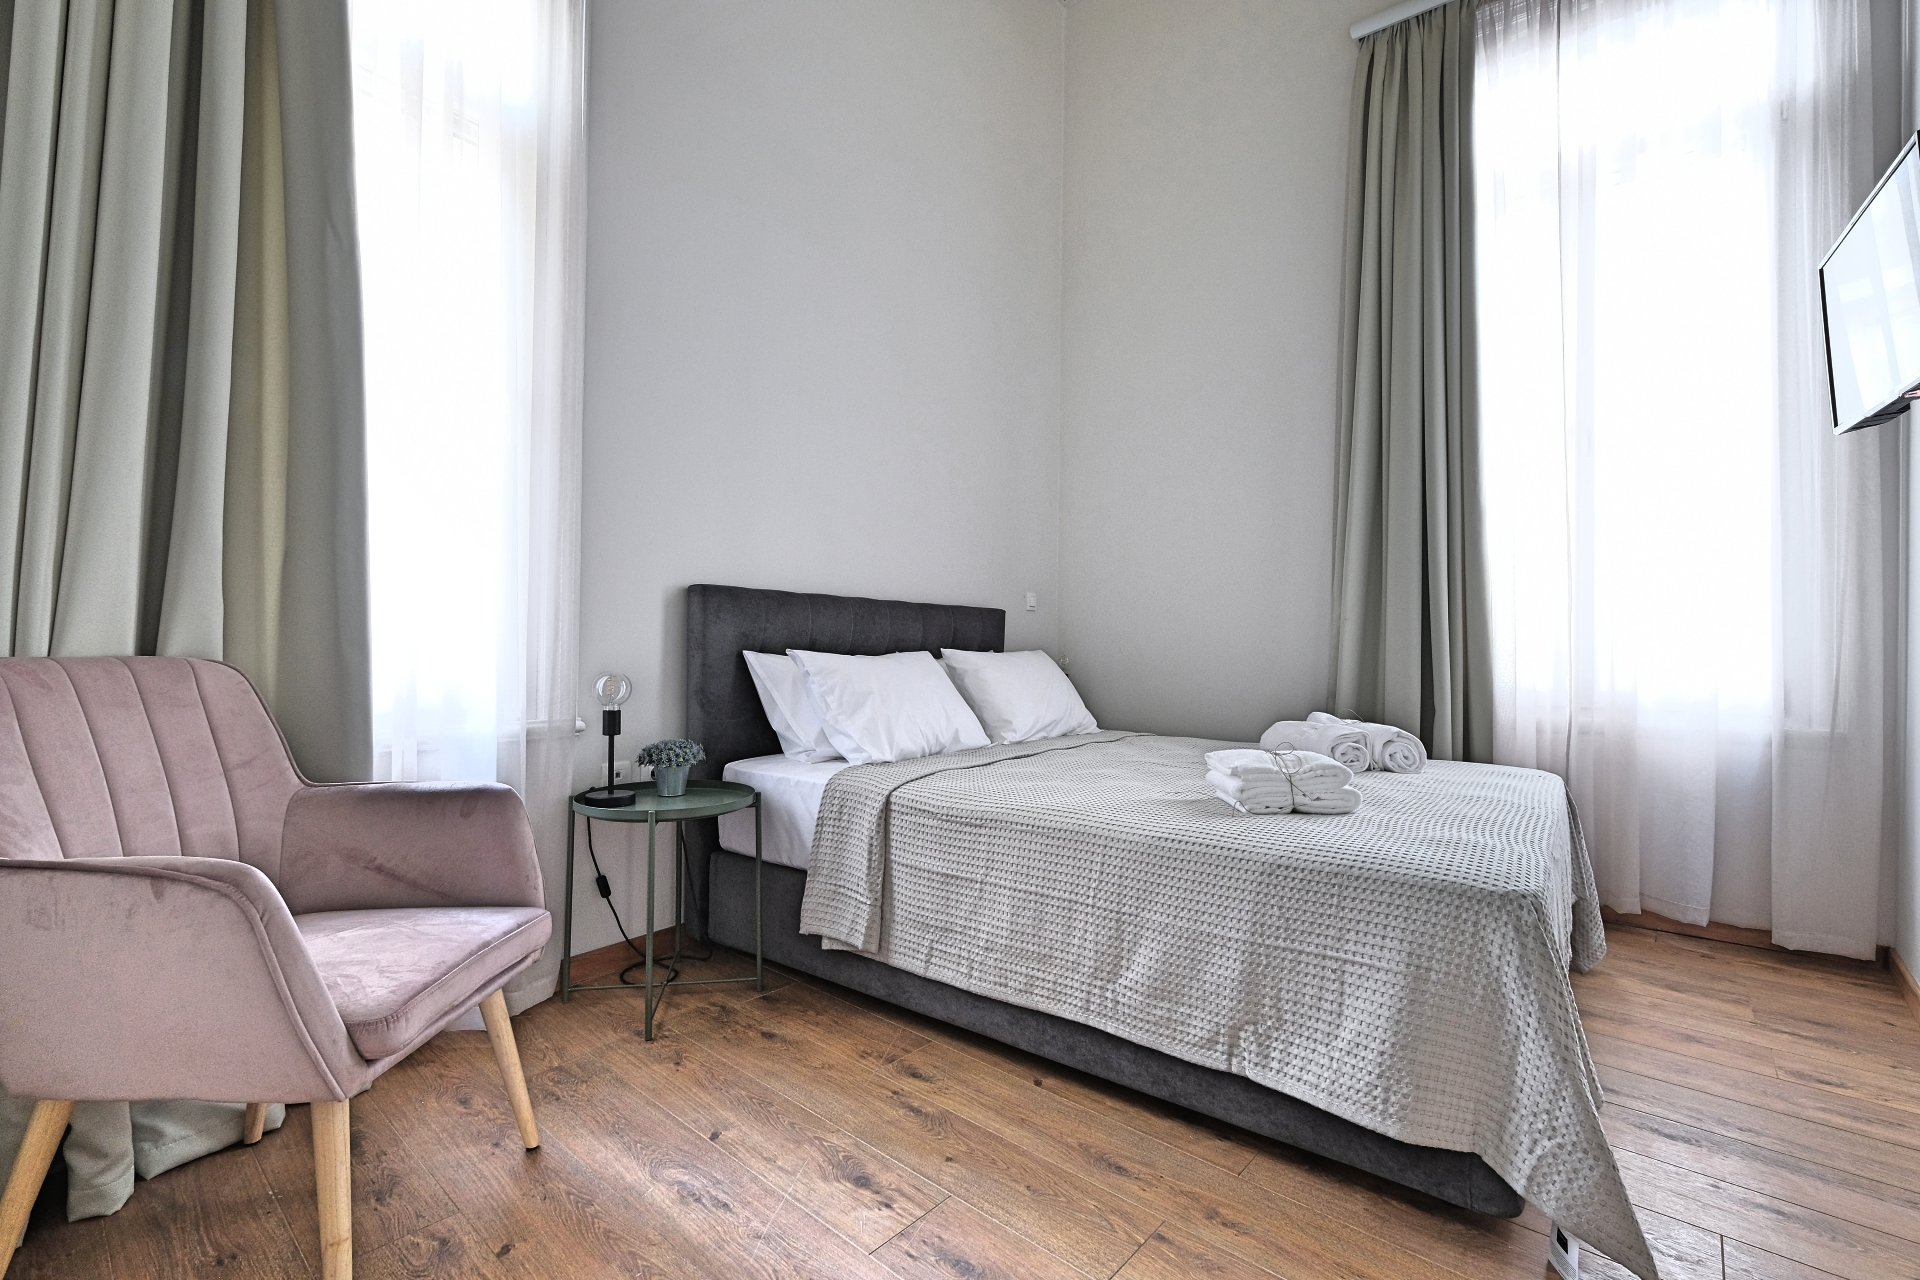 Standard Double Room with Double Bed 1 - Agora Residence - Hotel in Chios